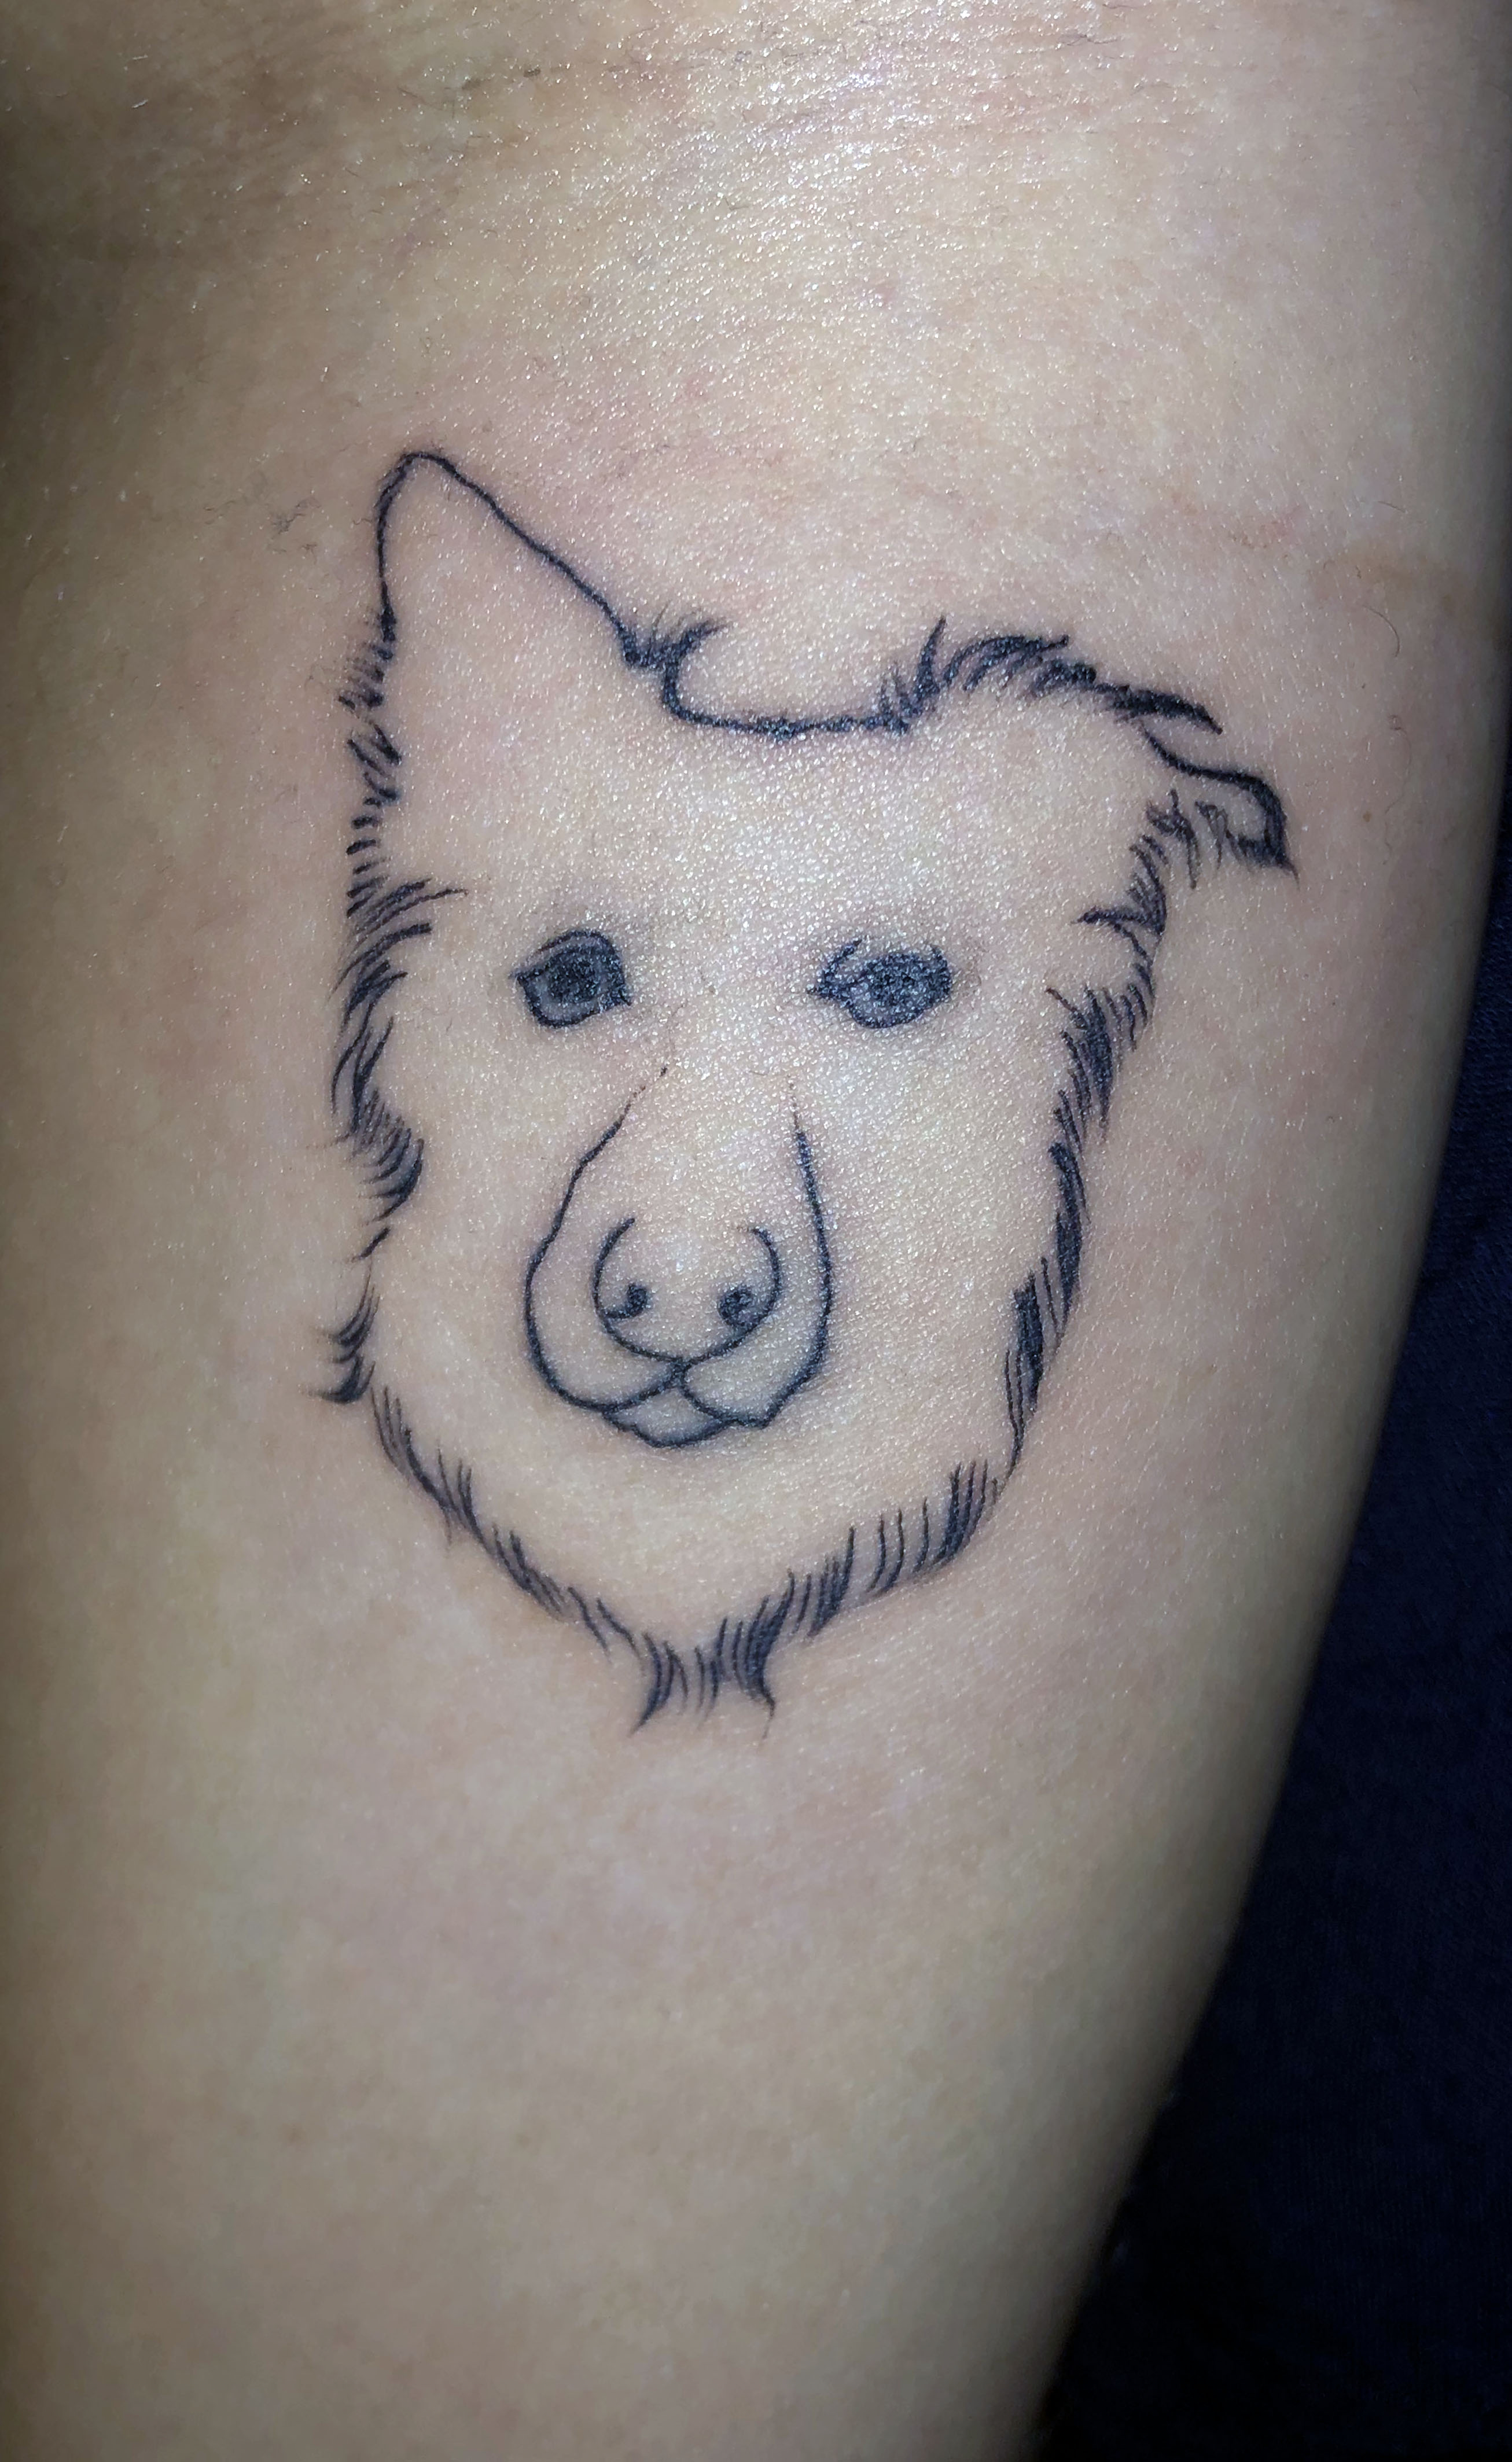 Kayla's tattoo before it was fixed. Credit: Caters